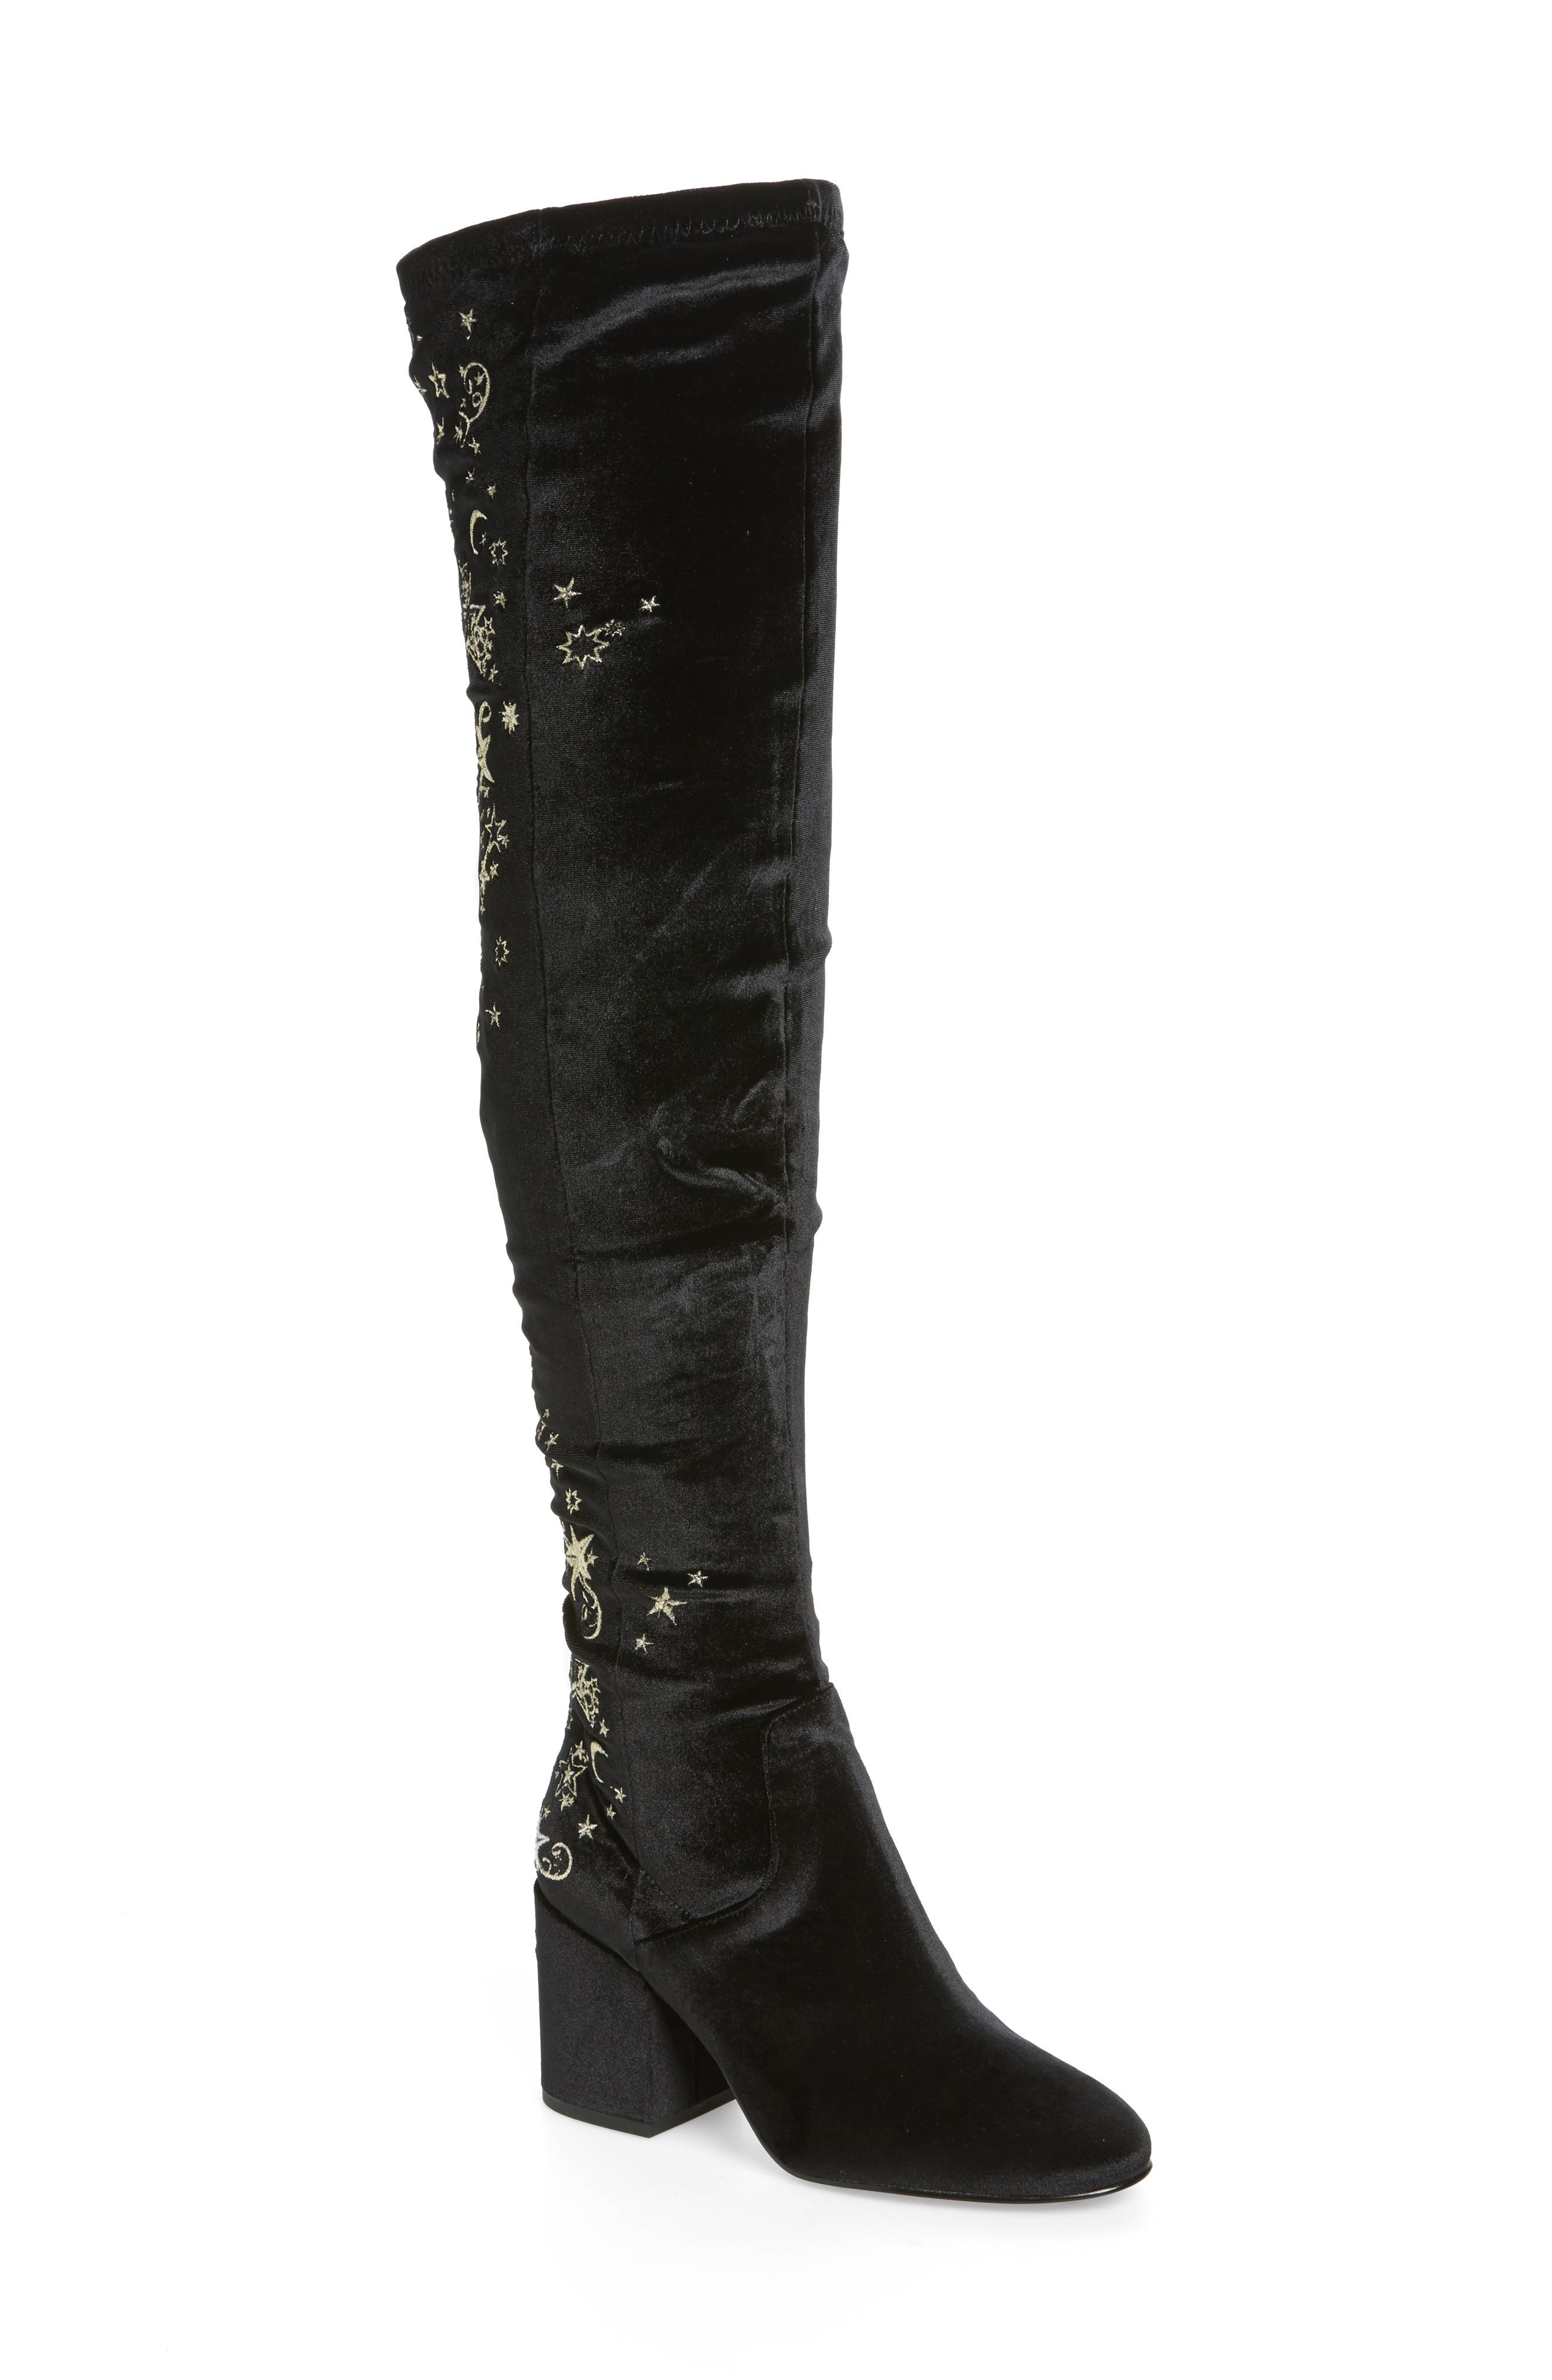 Main Image - Ash Eros Embroidered Velvet Over the Knee Boot (Women)